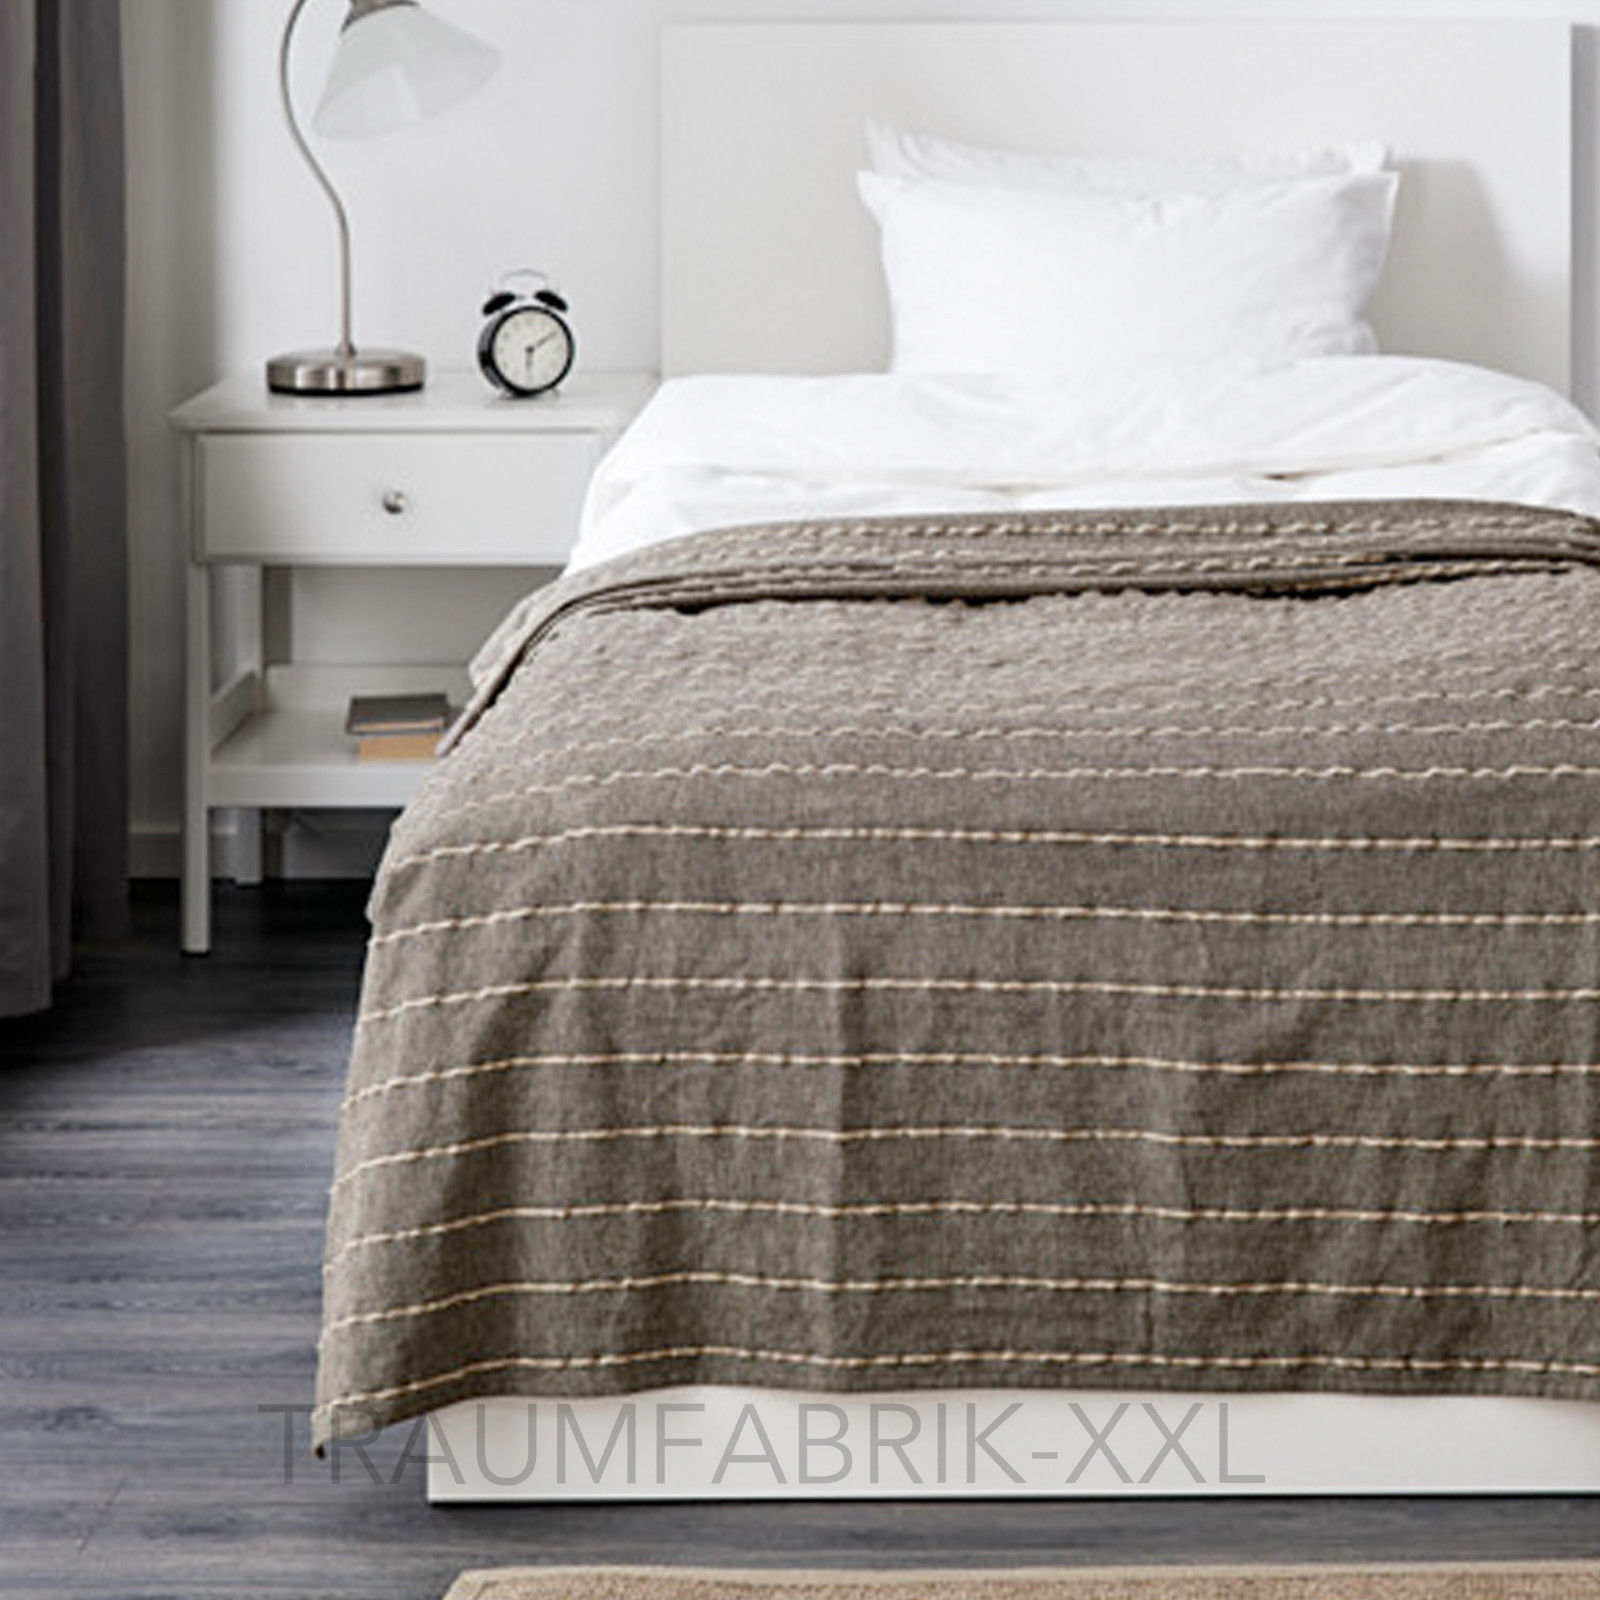 ikea plaid tagesdecke berwurf tall rt natur 150 x 250 cm sofadecke bett berwurf traumfabrik xxl. Black Bedroom Furniture Sets. Home Design Ideas